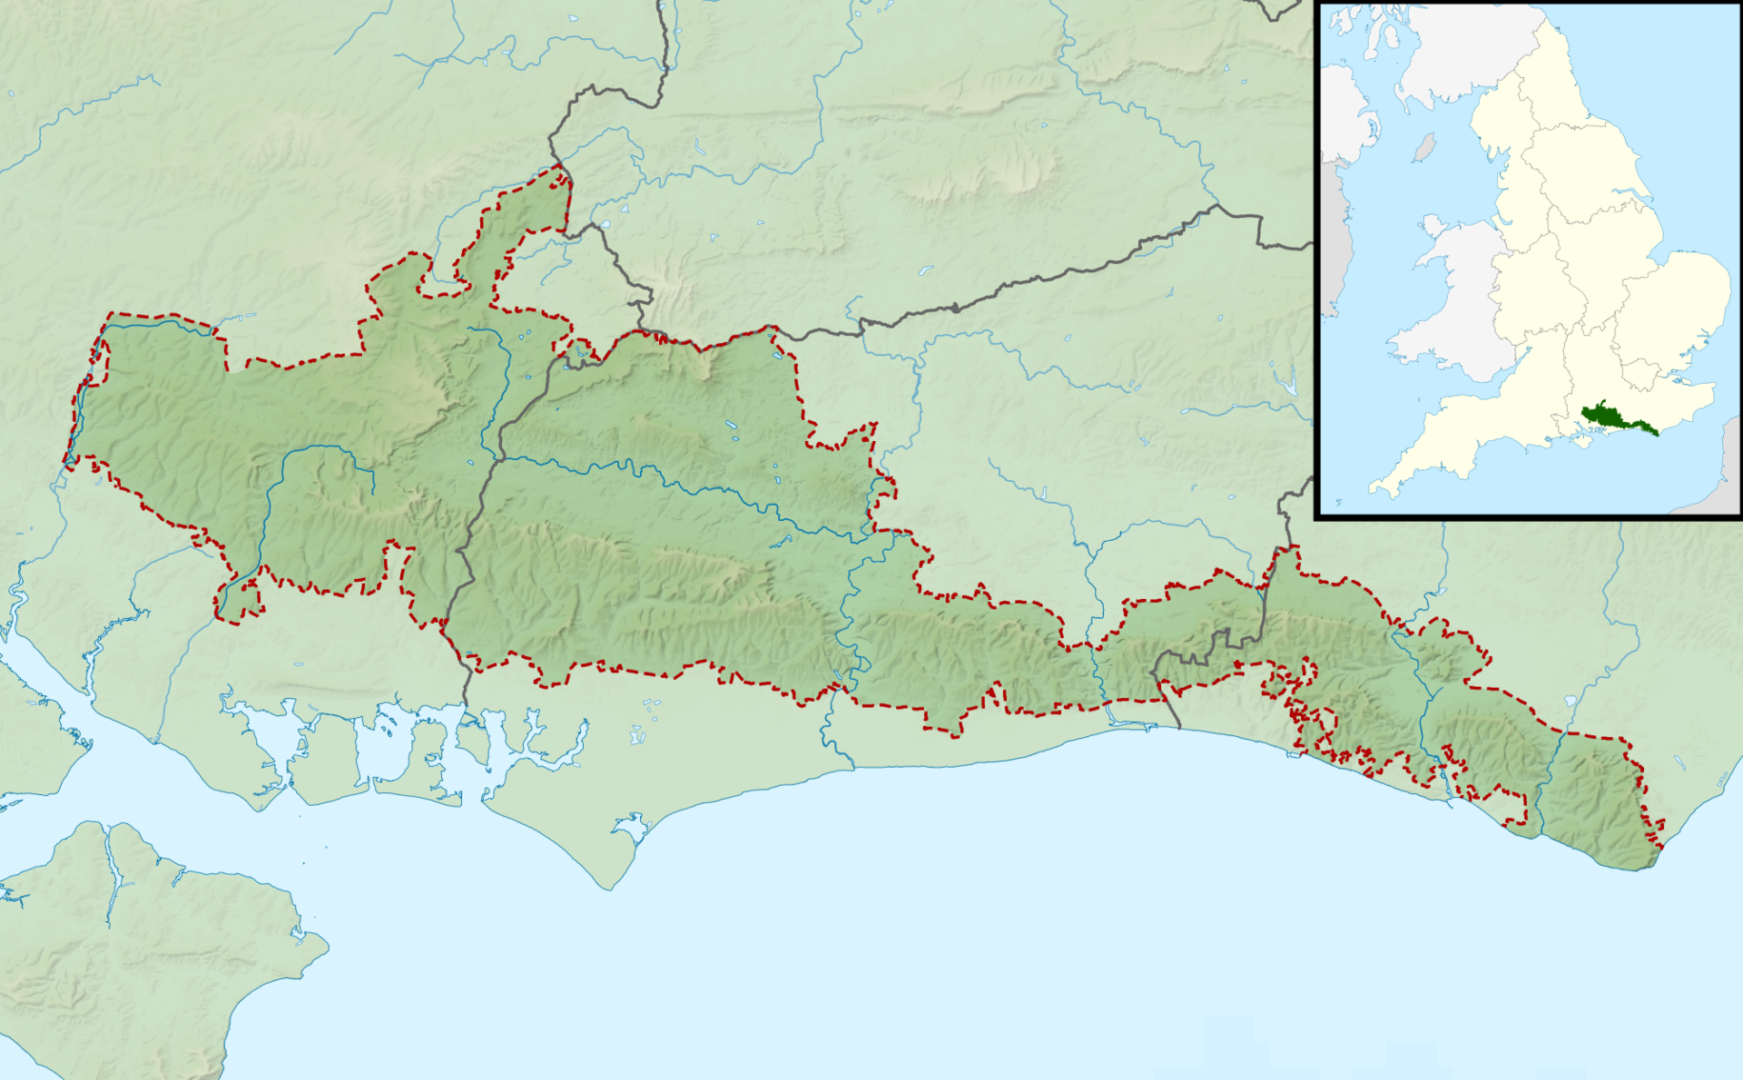 Map of South Downs location within the UK